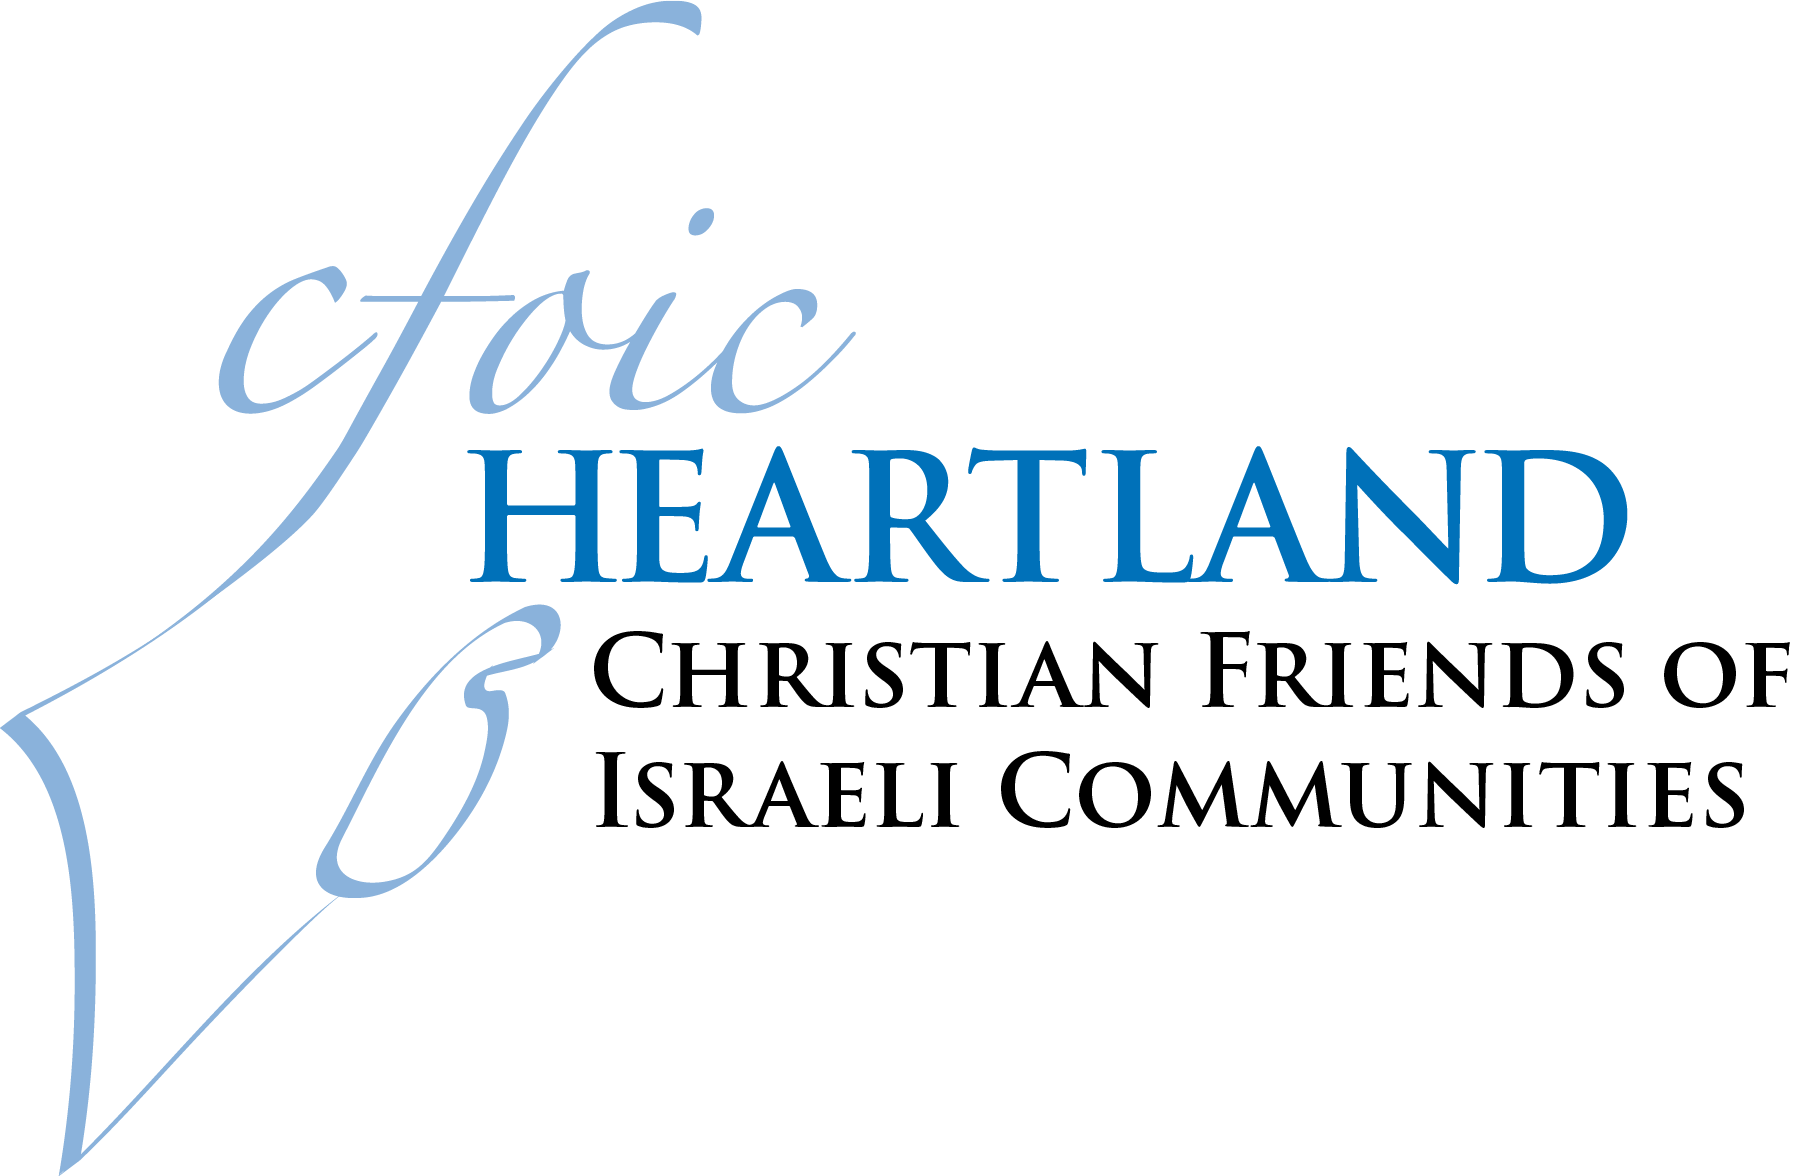 Christian Friends of Israeli Communities